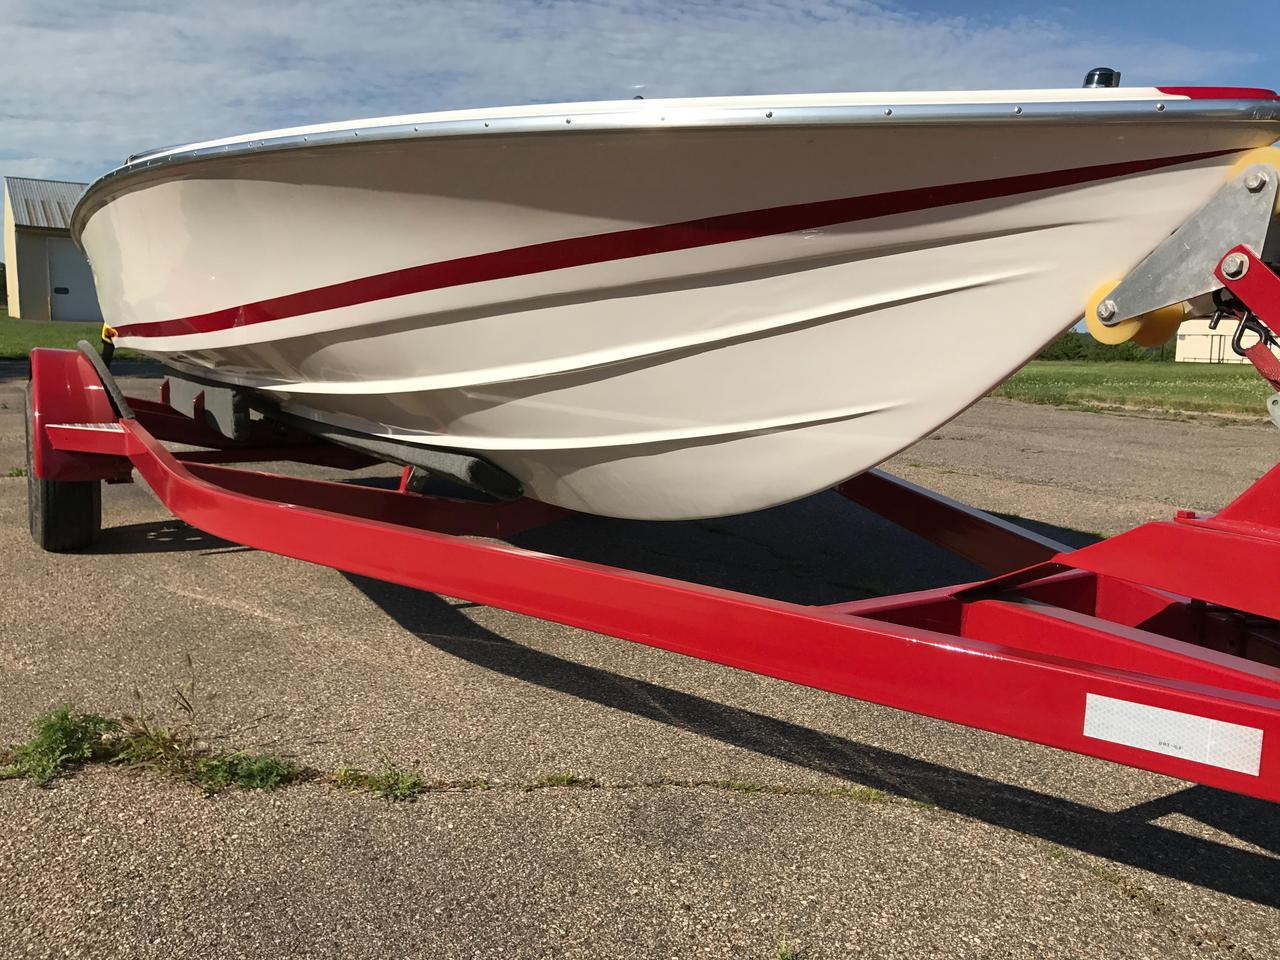 1968 Used Donzi Sweet 16 Antique And Classic Boat For Sale